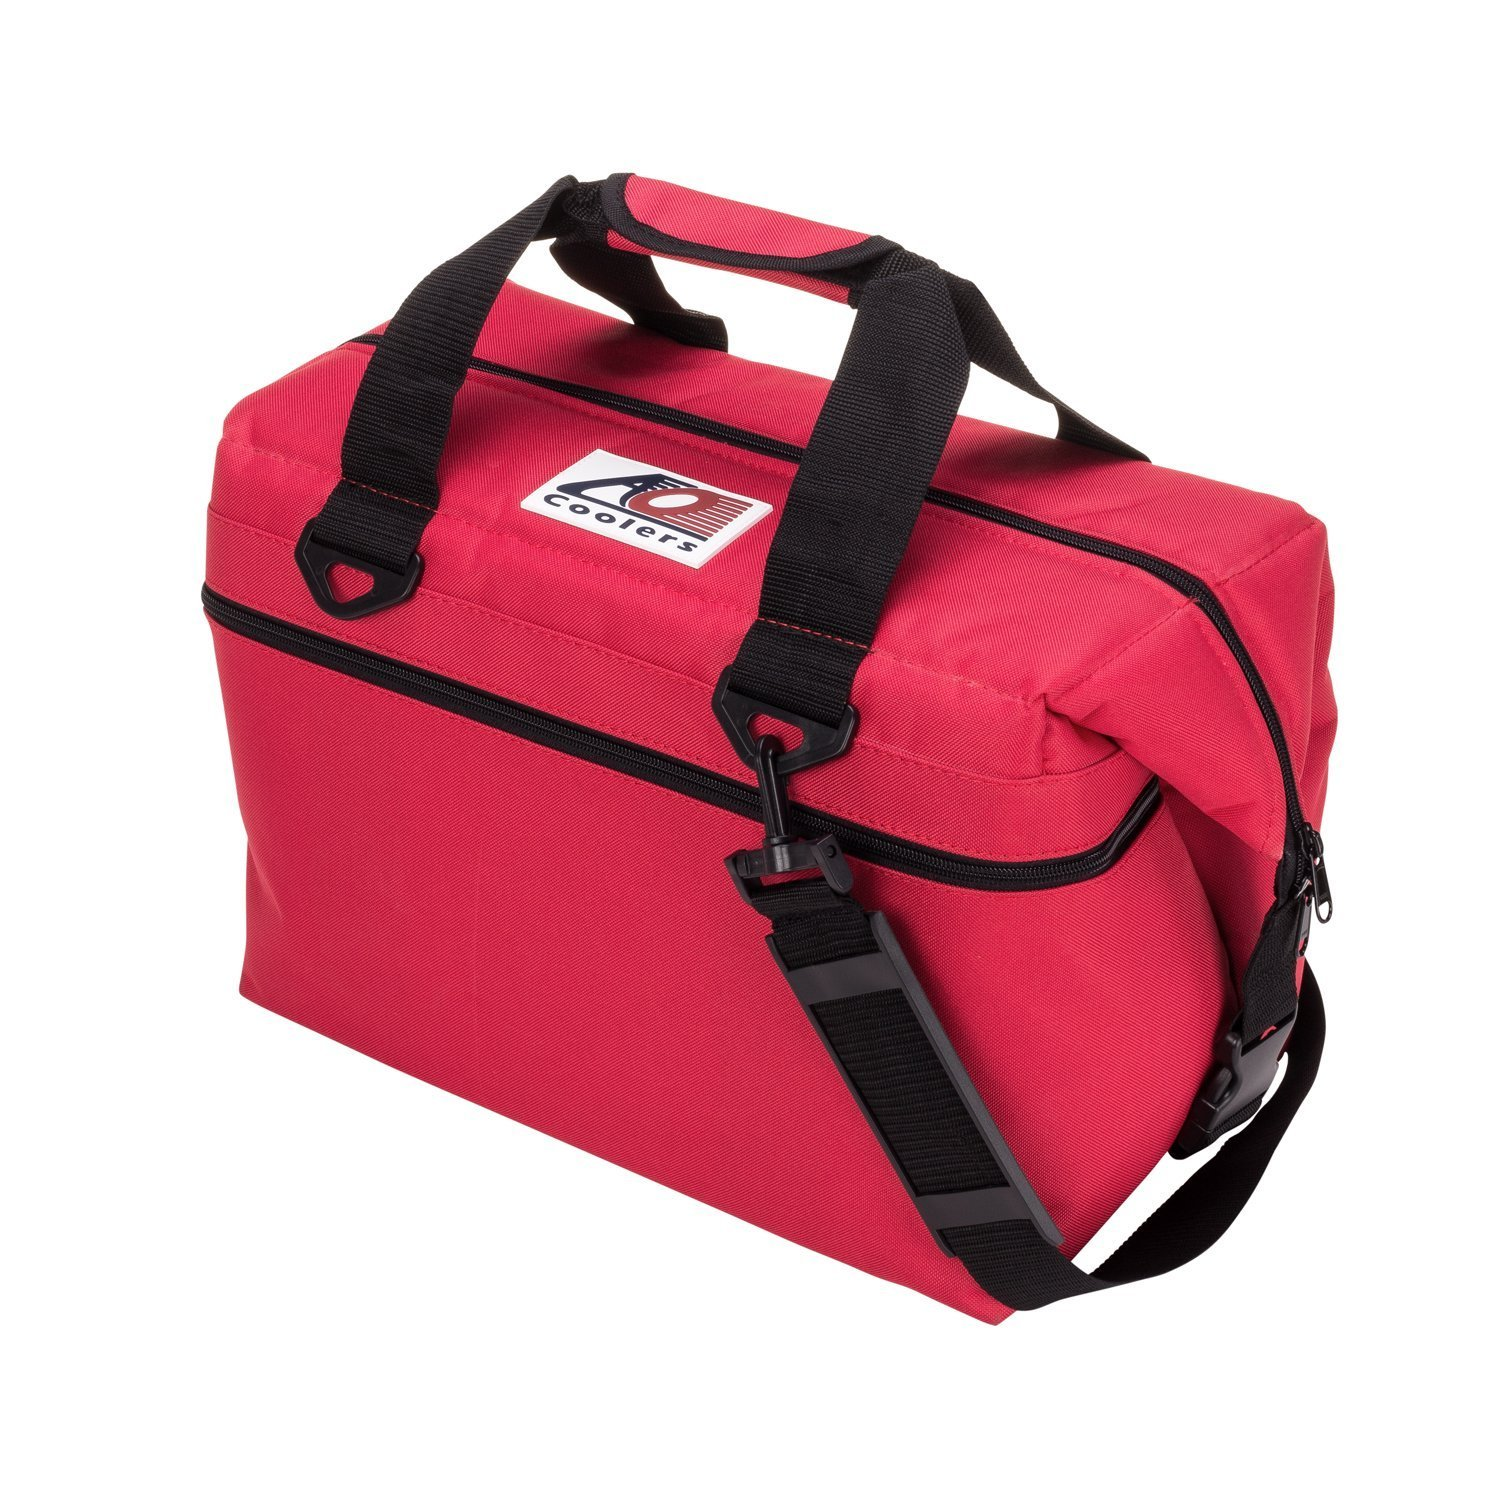 AO Coolers Canvas Soft Cooler with High-Density Insulation, Red, 36-Can